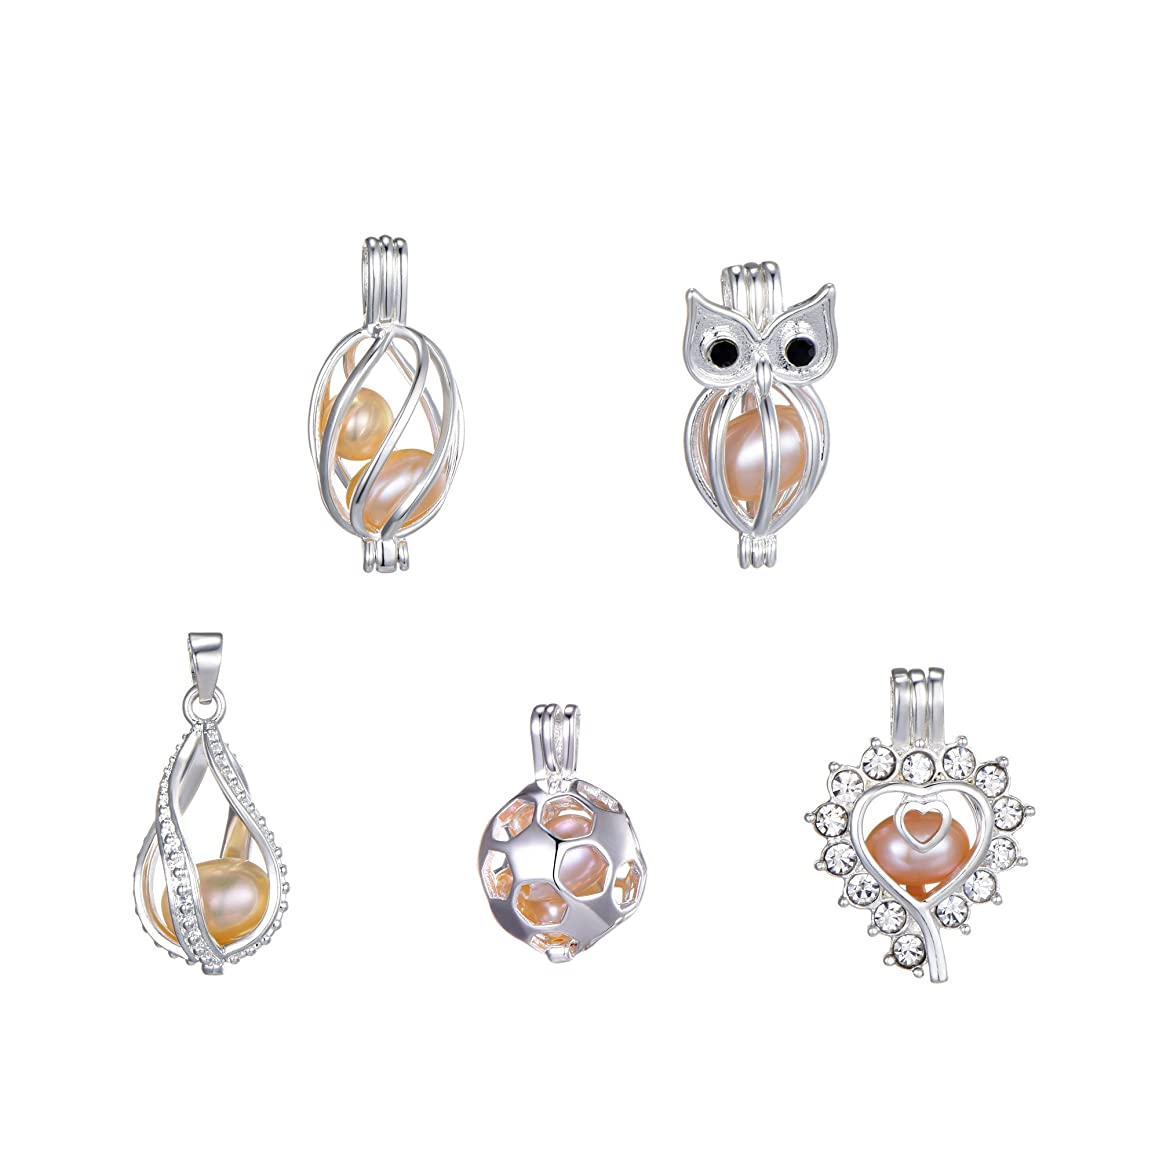 5set Hollow Pearl Cage Silver/Rhodium Plated Beads Cage Locket Pendant Necklace/Women Gift Mother's Day Gift(5pcs Pendant+5pcs Pearls) (Silver 1)